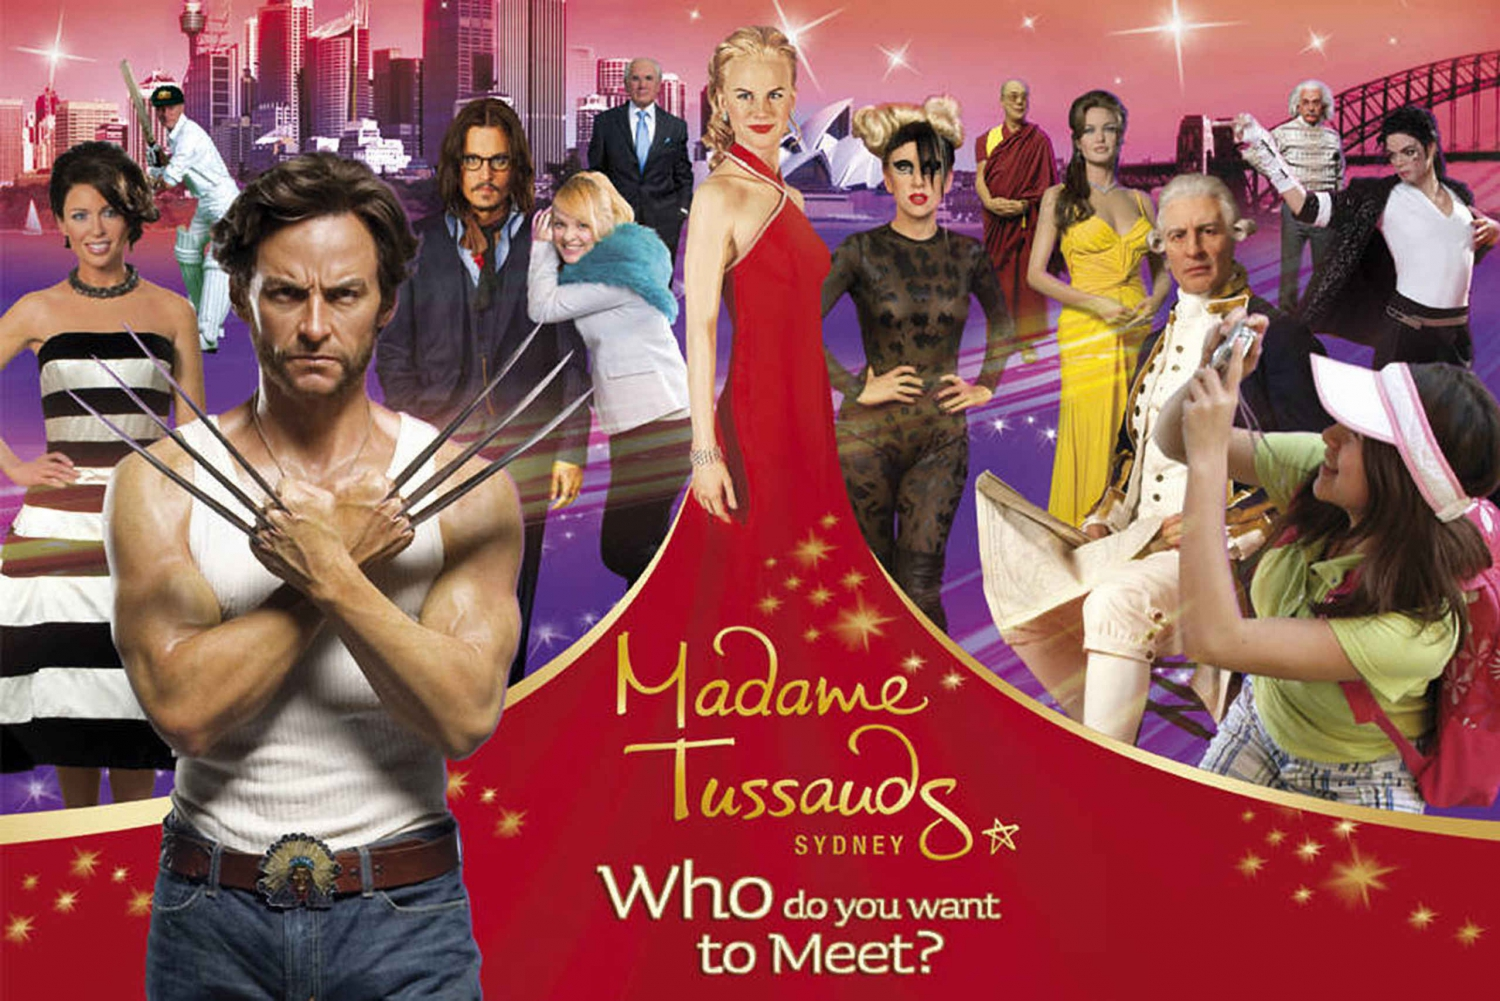 45-Minute Jet Ride + Madame Tussauds Combo